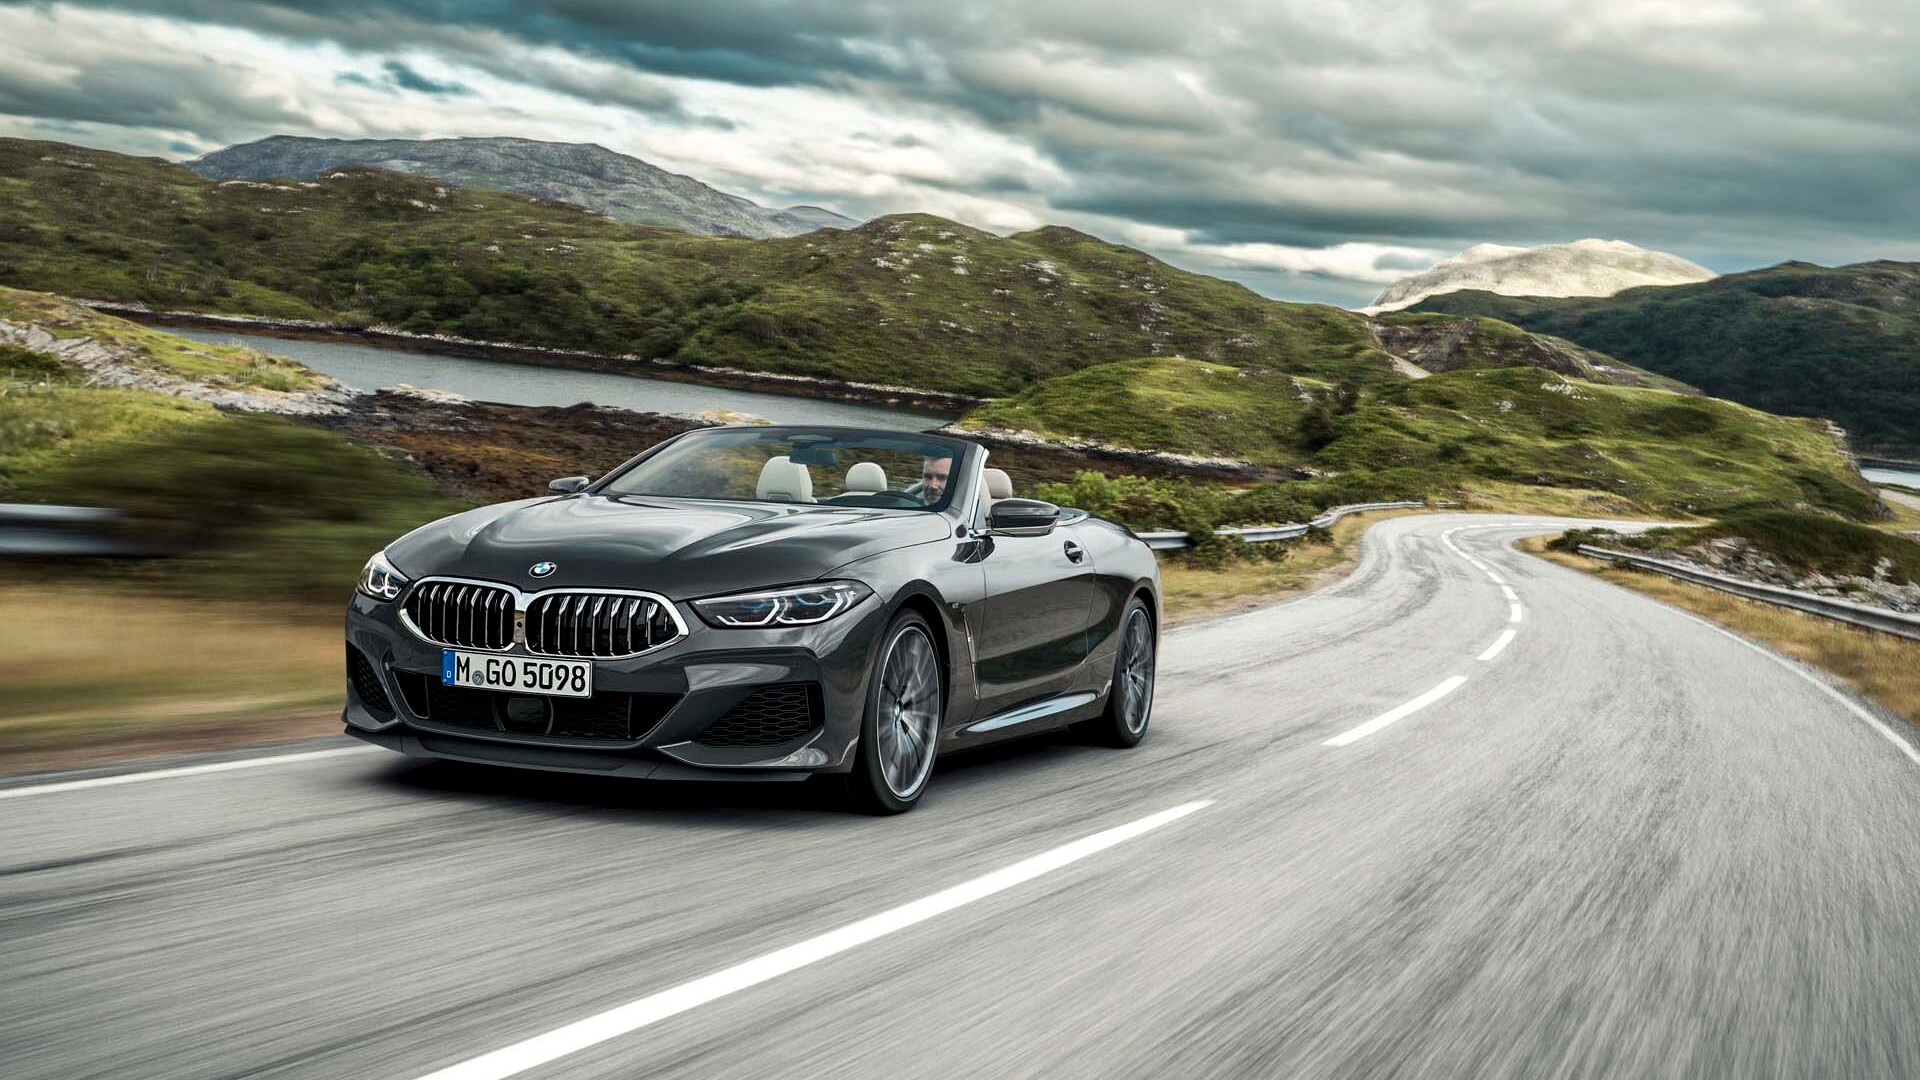 2019 BMW 8-Series Convertible (M850i xDrive Convertible)